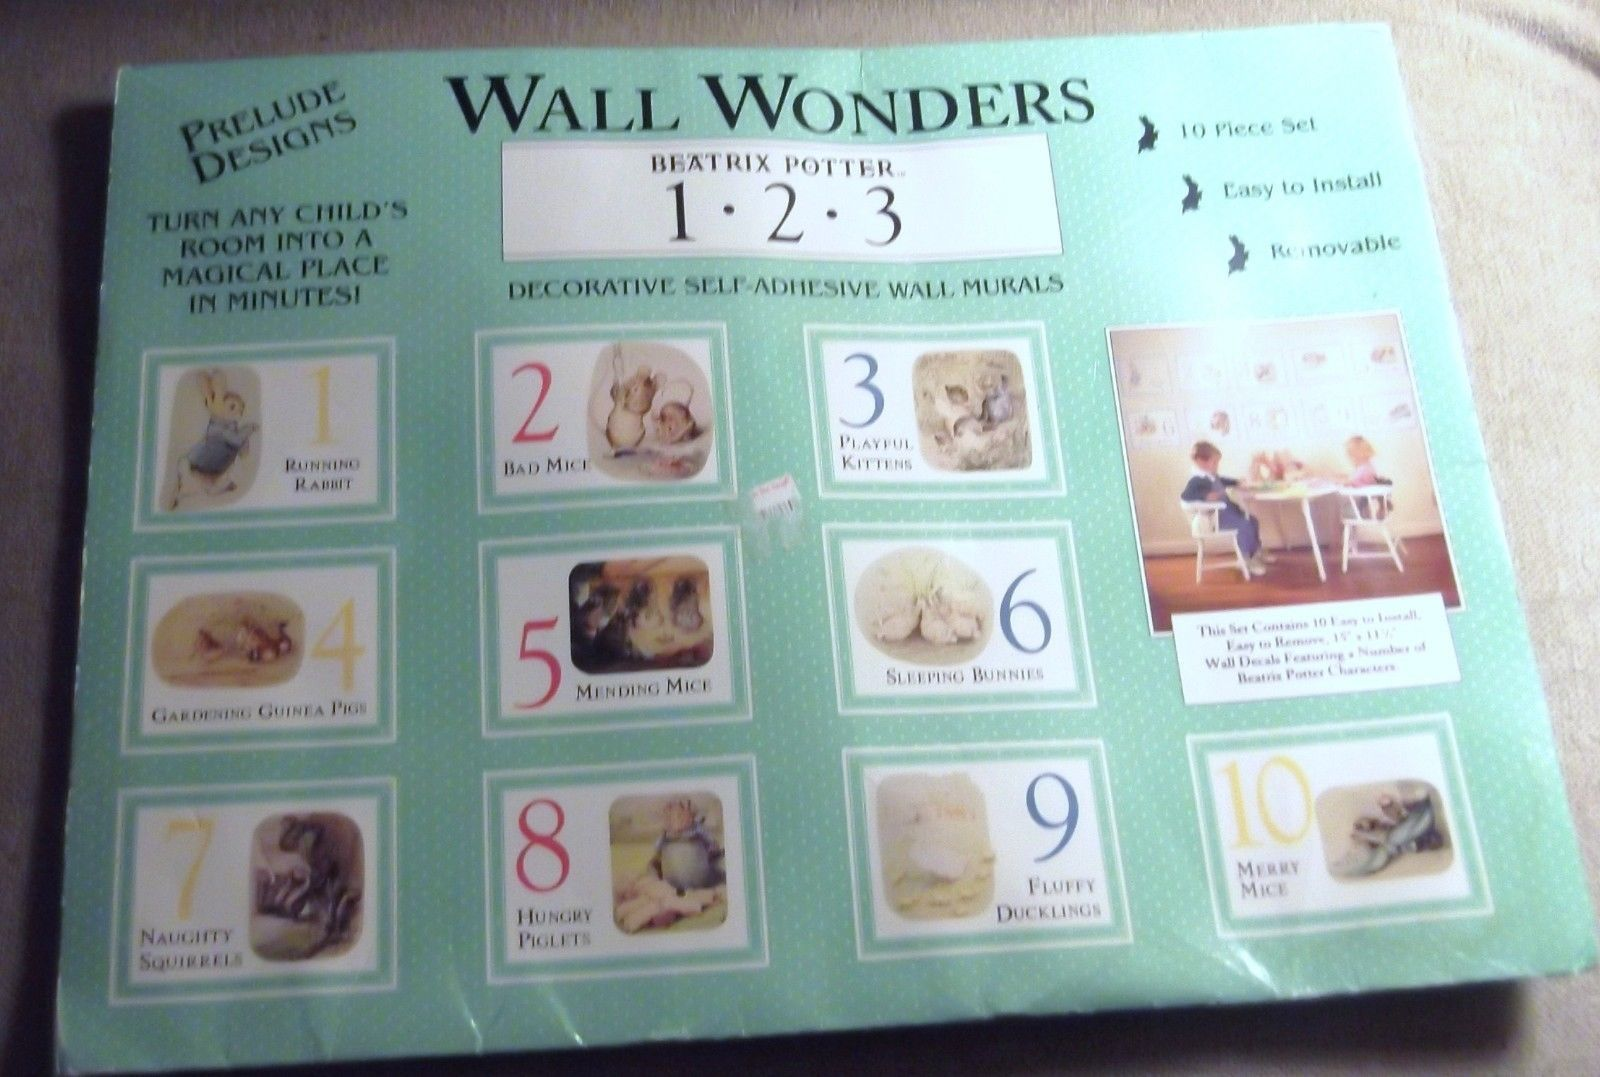 Primary image for Wall Wonders Beatrix Potter 1.2.3.